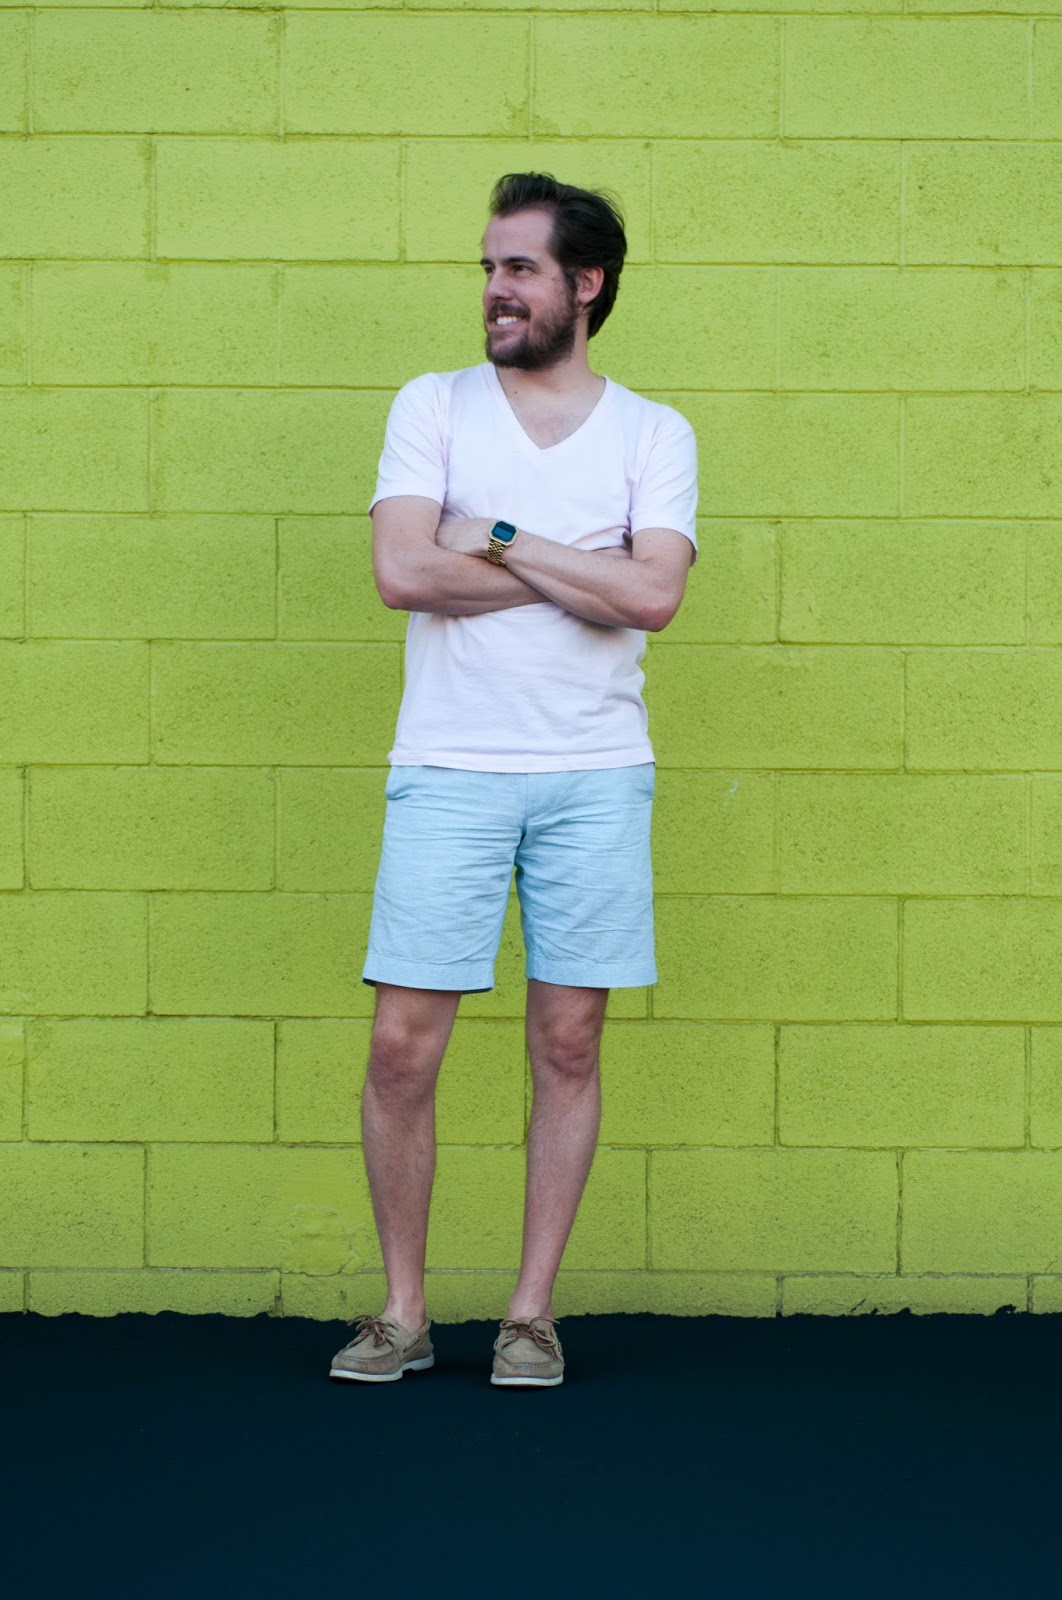 mens fashion, mens style, jcrew stanton short, sperry topsider boat shoes, american apparel v neck, ootd